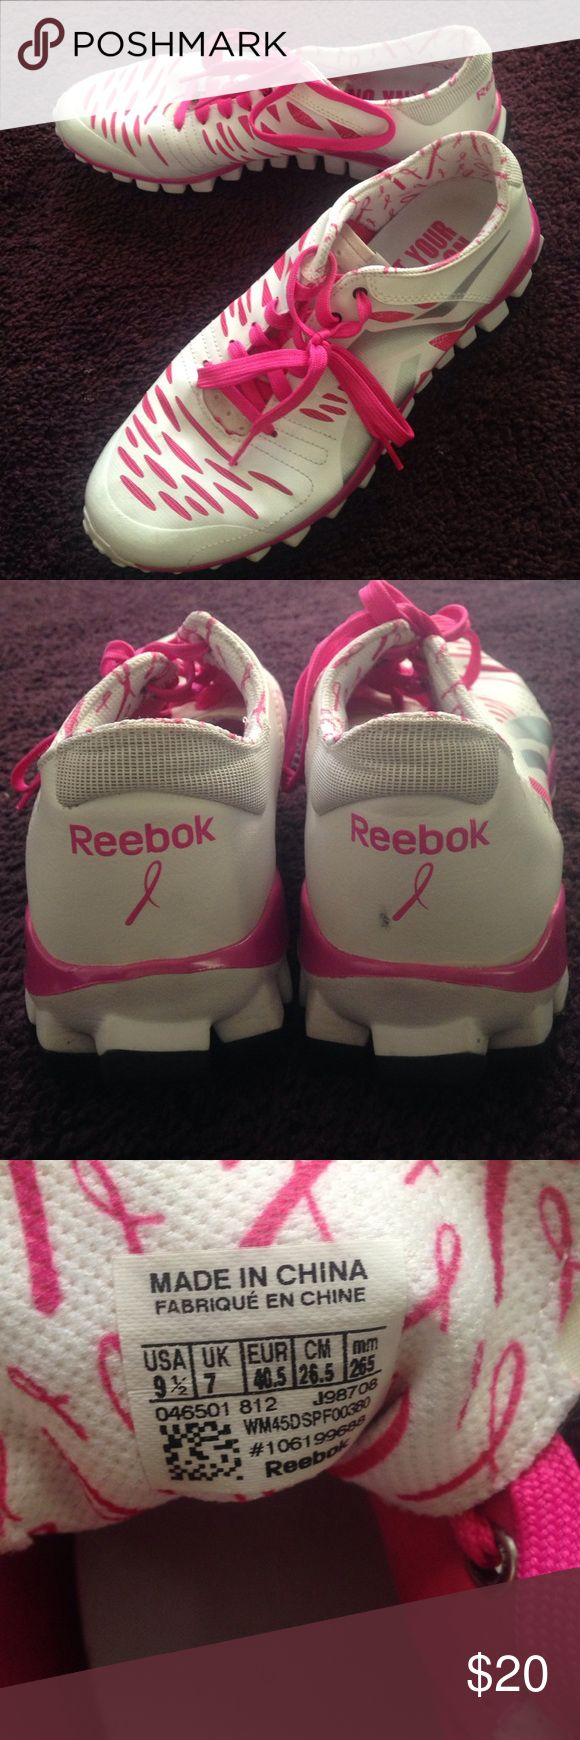 Pink & white breast cancer edition Reebok sneakers These are pretty much brand new pink and white lightweight breast cancer edition Reebok sneakers! Super cute and comfy and only worn a few times! A little too big for me so trying to get them off my hands! Reebok Shoes Athletic Shoes